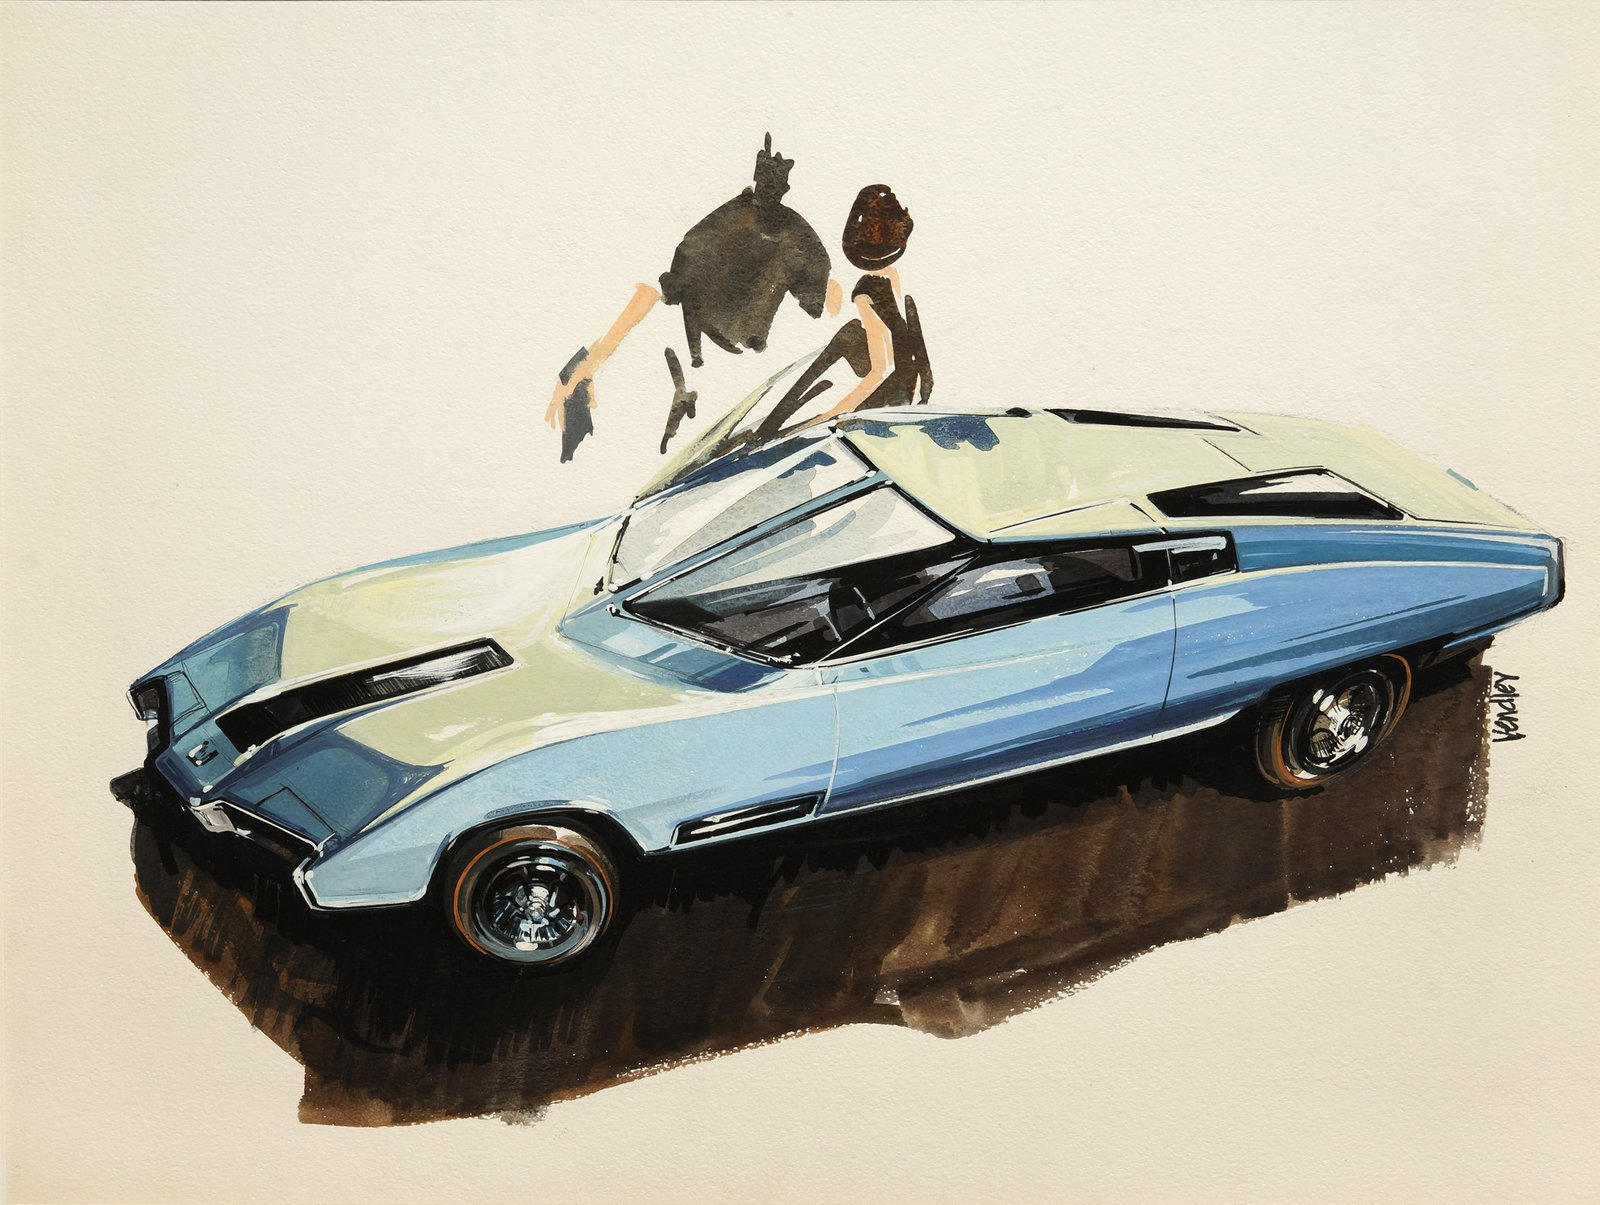 Ken Vendley, Design for Concept Car, 1959.  Photo 4 of 7 in When the Future Had Fins: Fantastical Vintage Auto Drawings